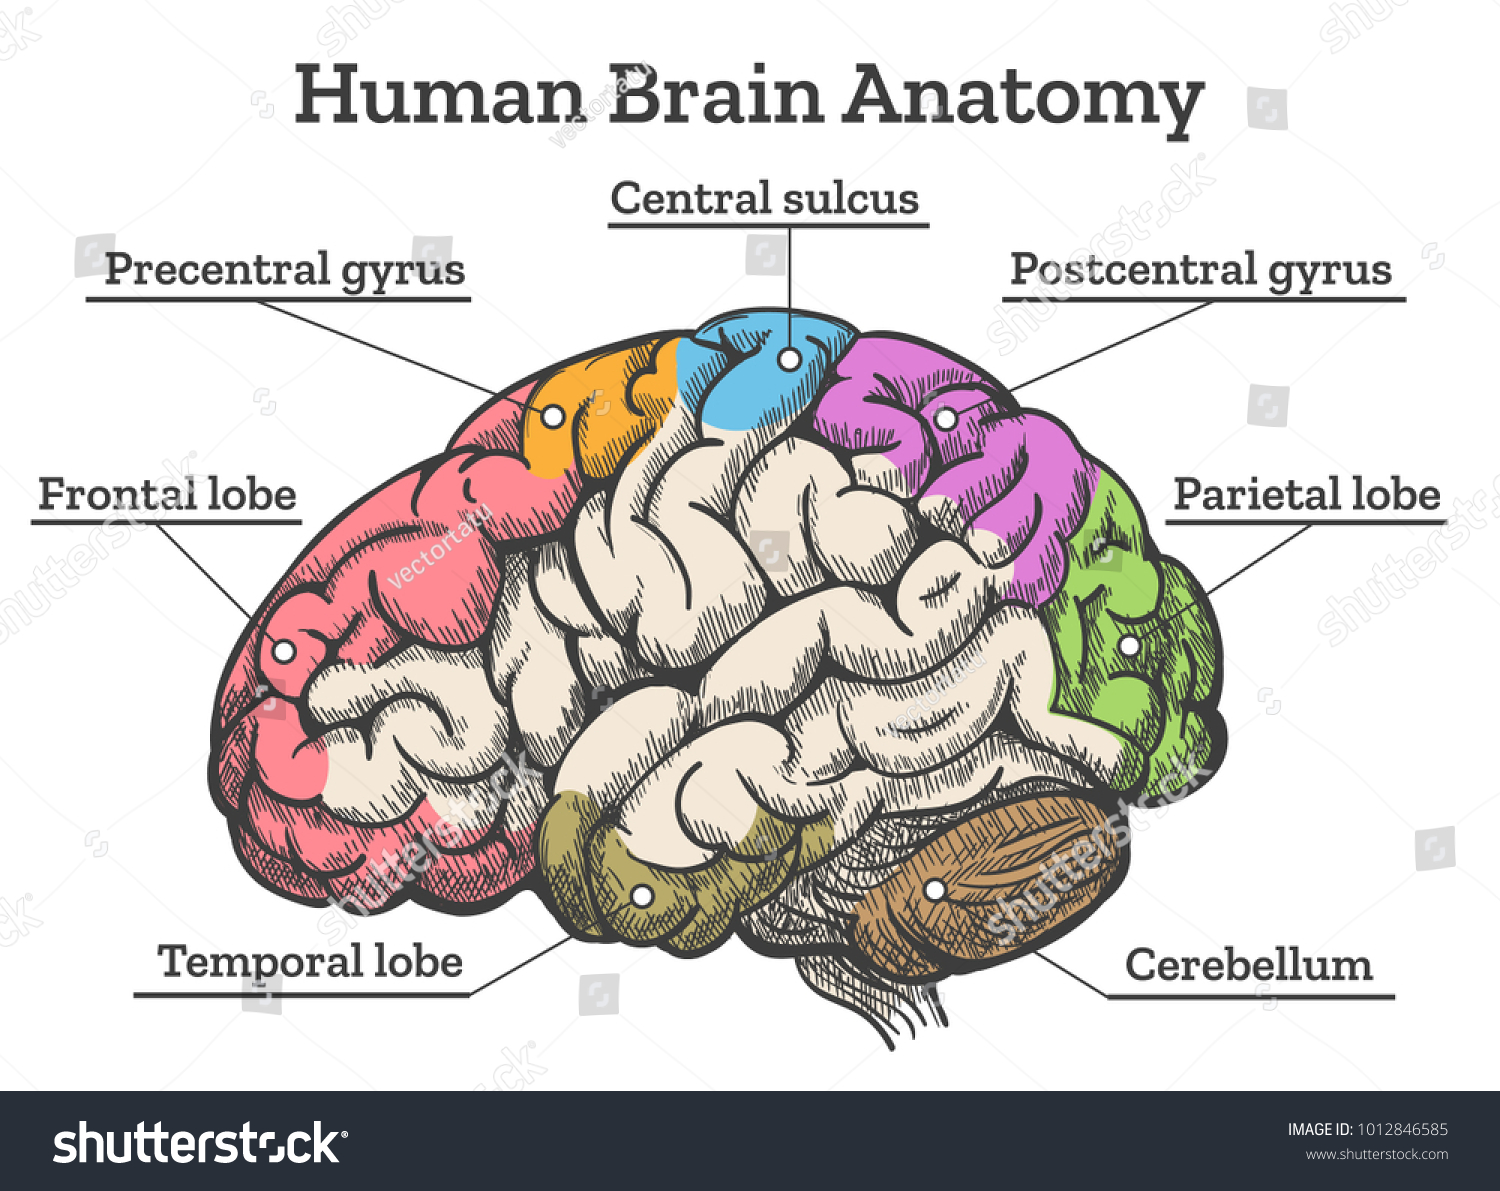 Human Brain Anatomy Diagram Sections Head Stock Vector Royalty Free